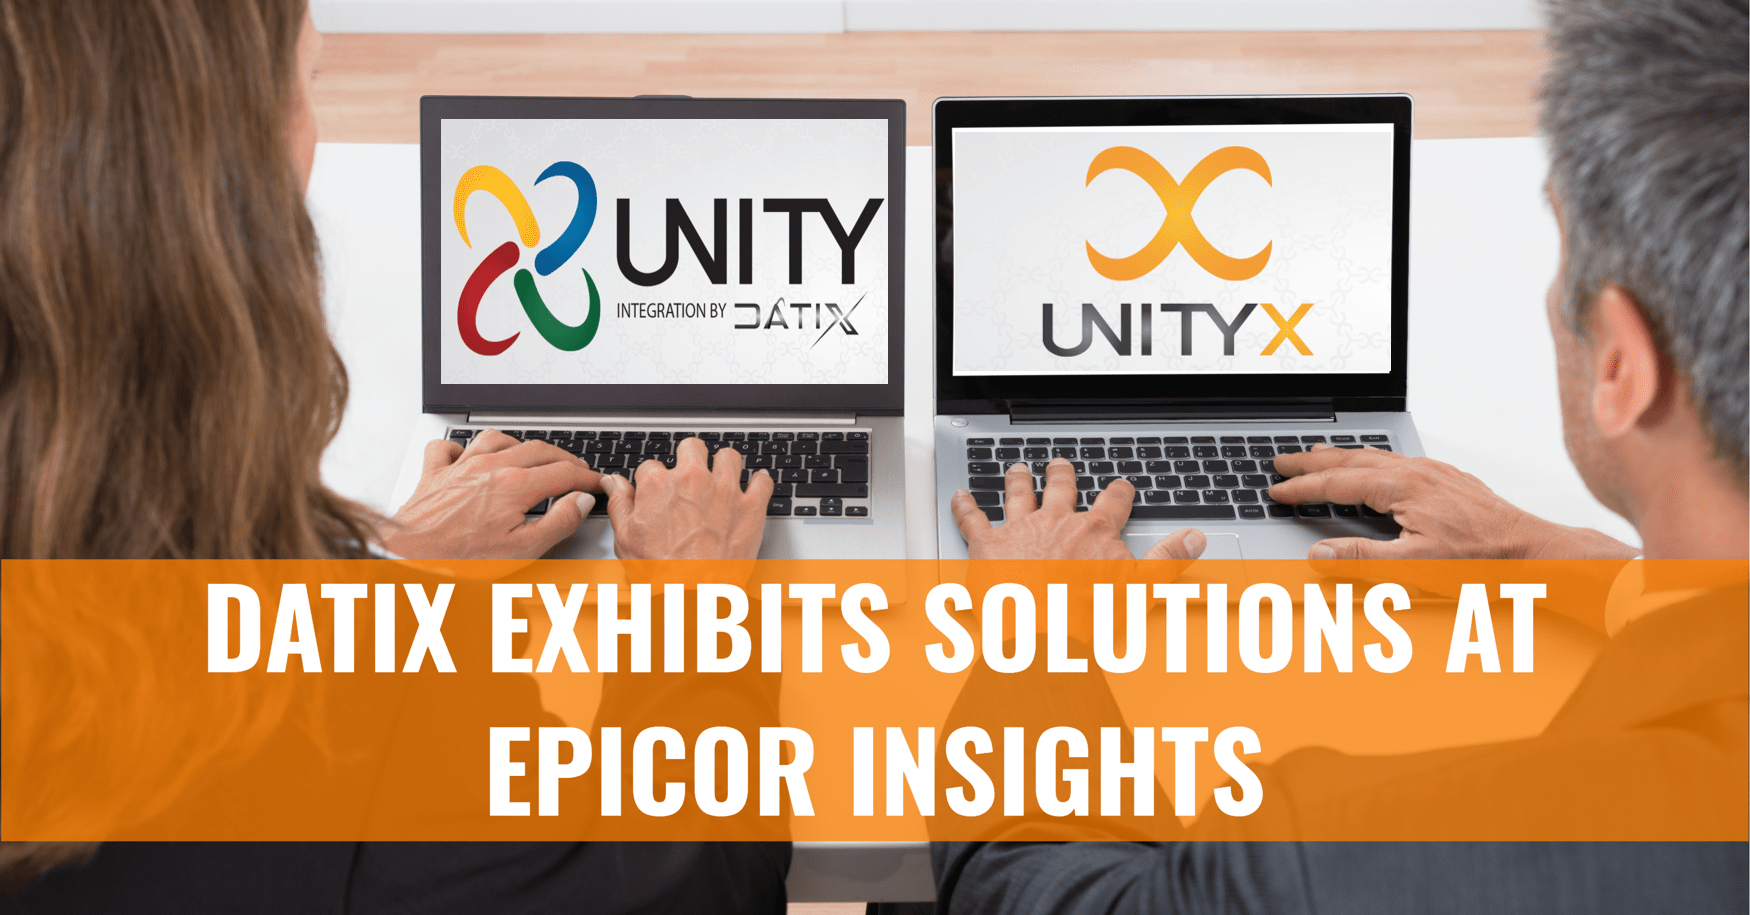 Unity Epicor Insights